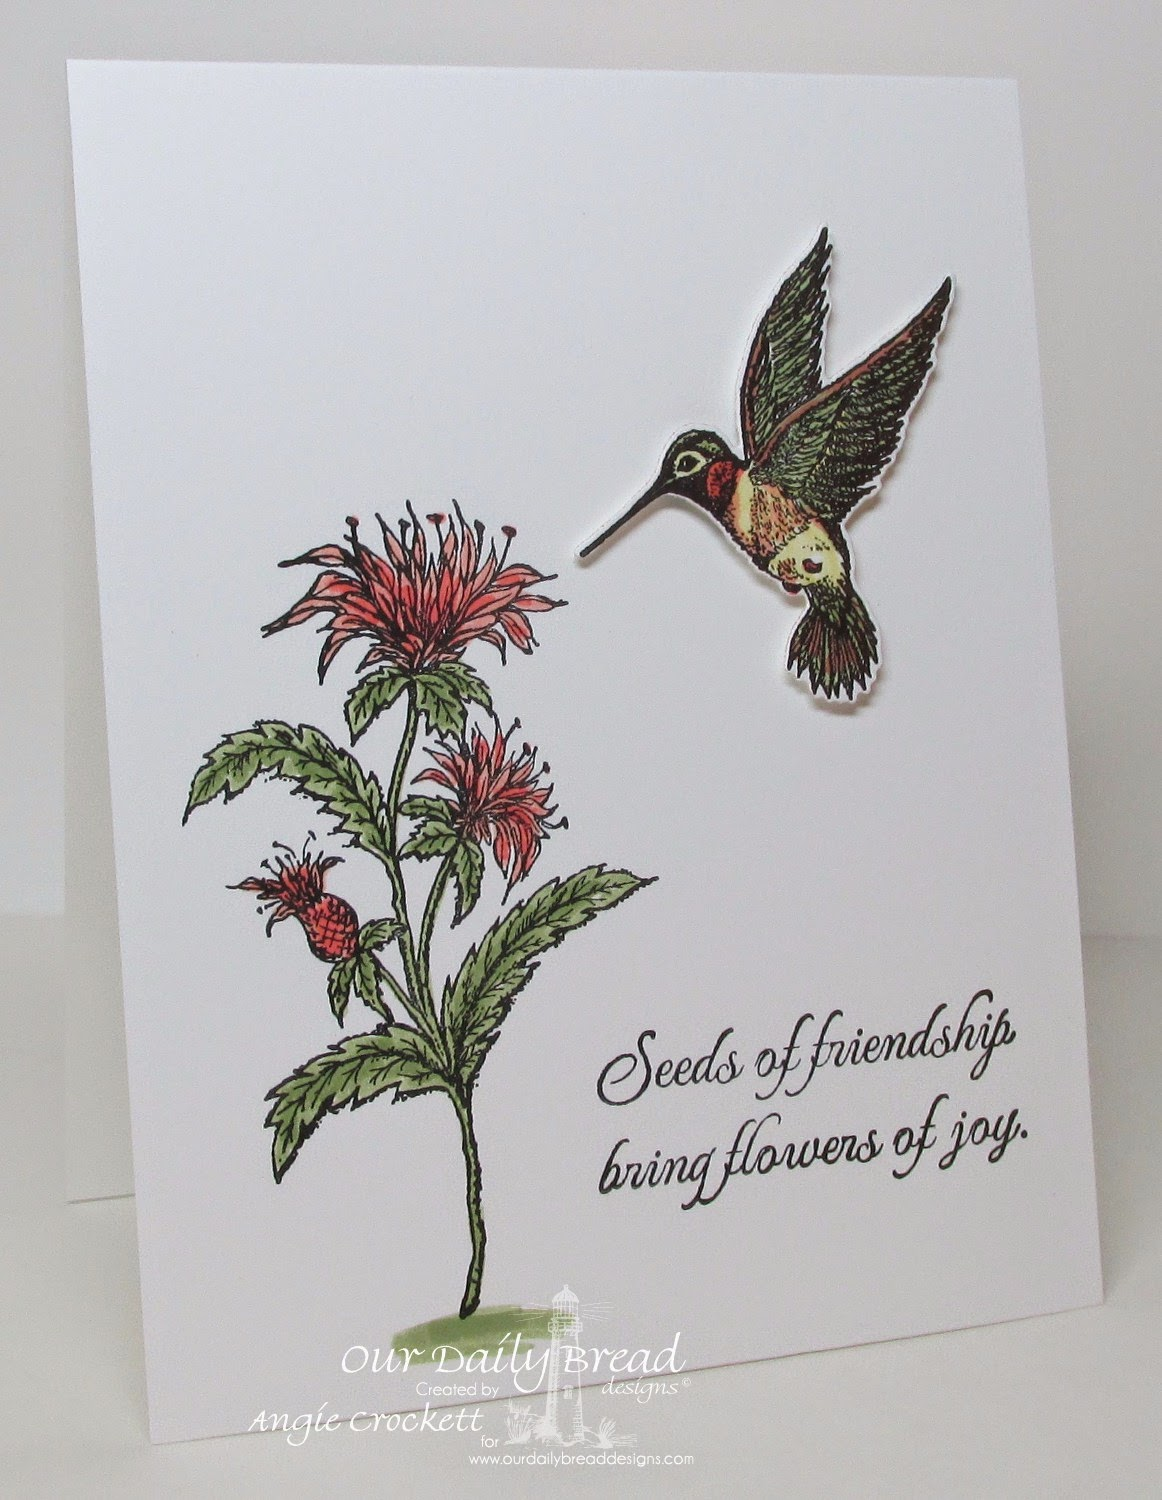 ODBD Hummingbird and Custom Die, Bee Balm, The Good Seed, Card Designer Angie Crockett